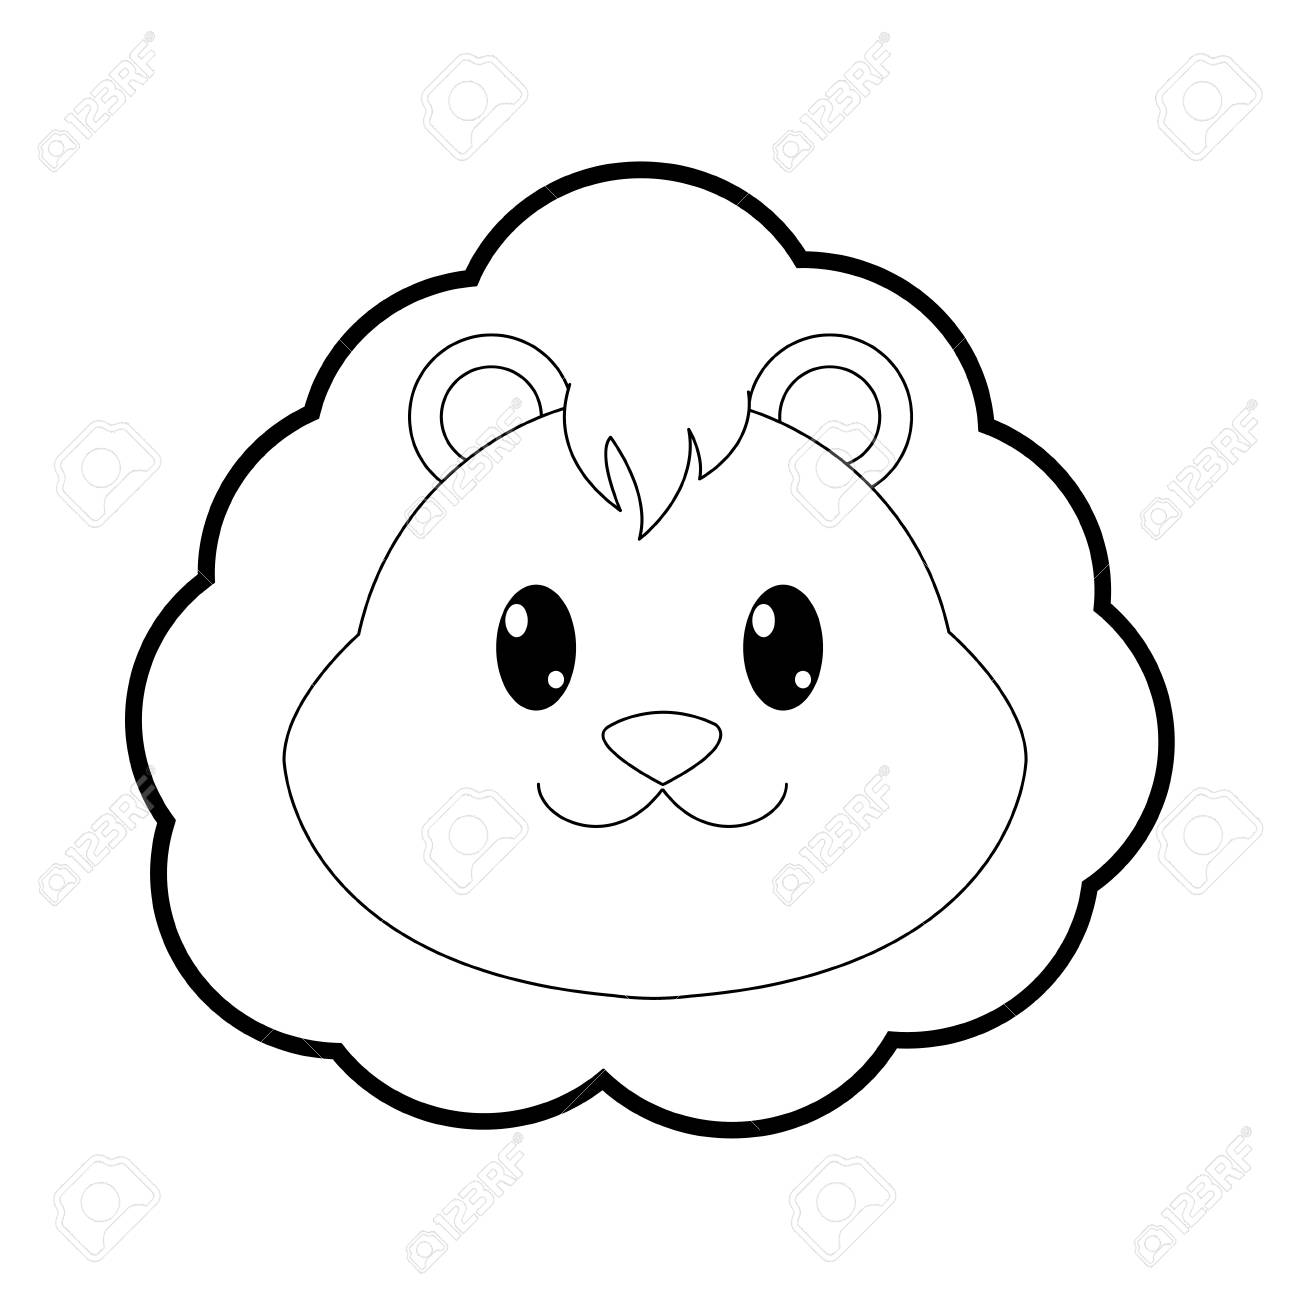 Outline Lion Head Cute Animal Character Vector Illustration Royalty Free Cliparts Vectors And Stock Illustration Image 95482234 Polish your personal project or design with these lion head transparent png images, make it even more personalized and more attractive. outline lion head cute animal character vector illustration